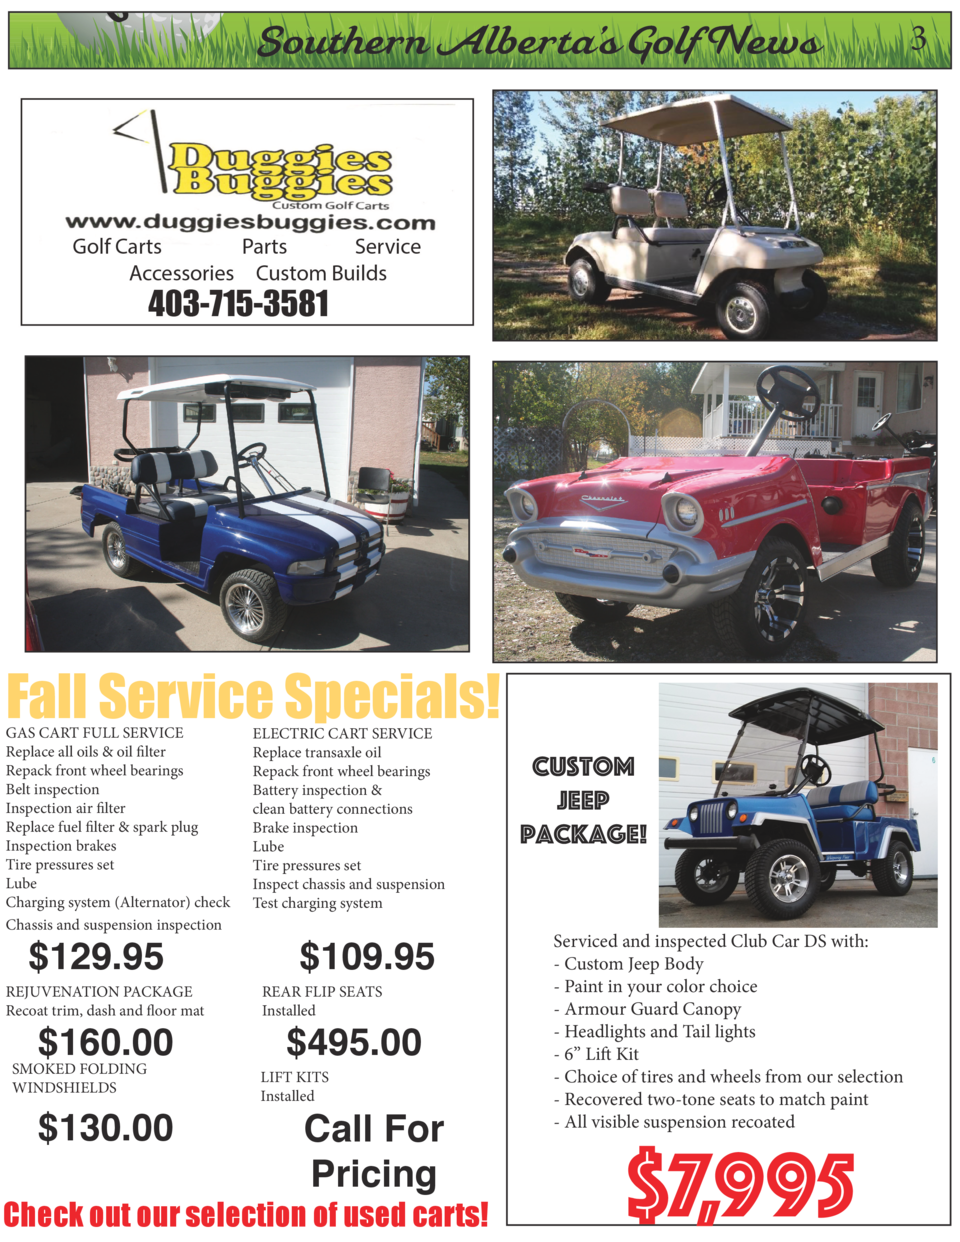 On  Southern Alberta   s Golf News  Fall Service Specials   GAS CART FULL SERVICE Replace all oils   oil filter Repack fro...